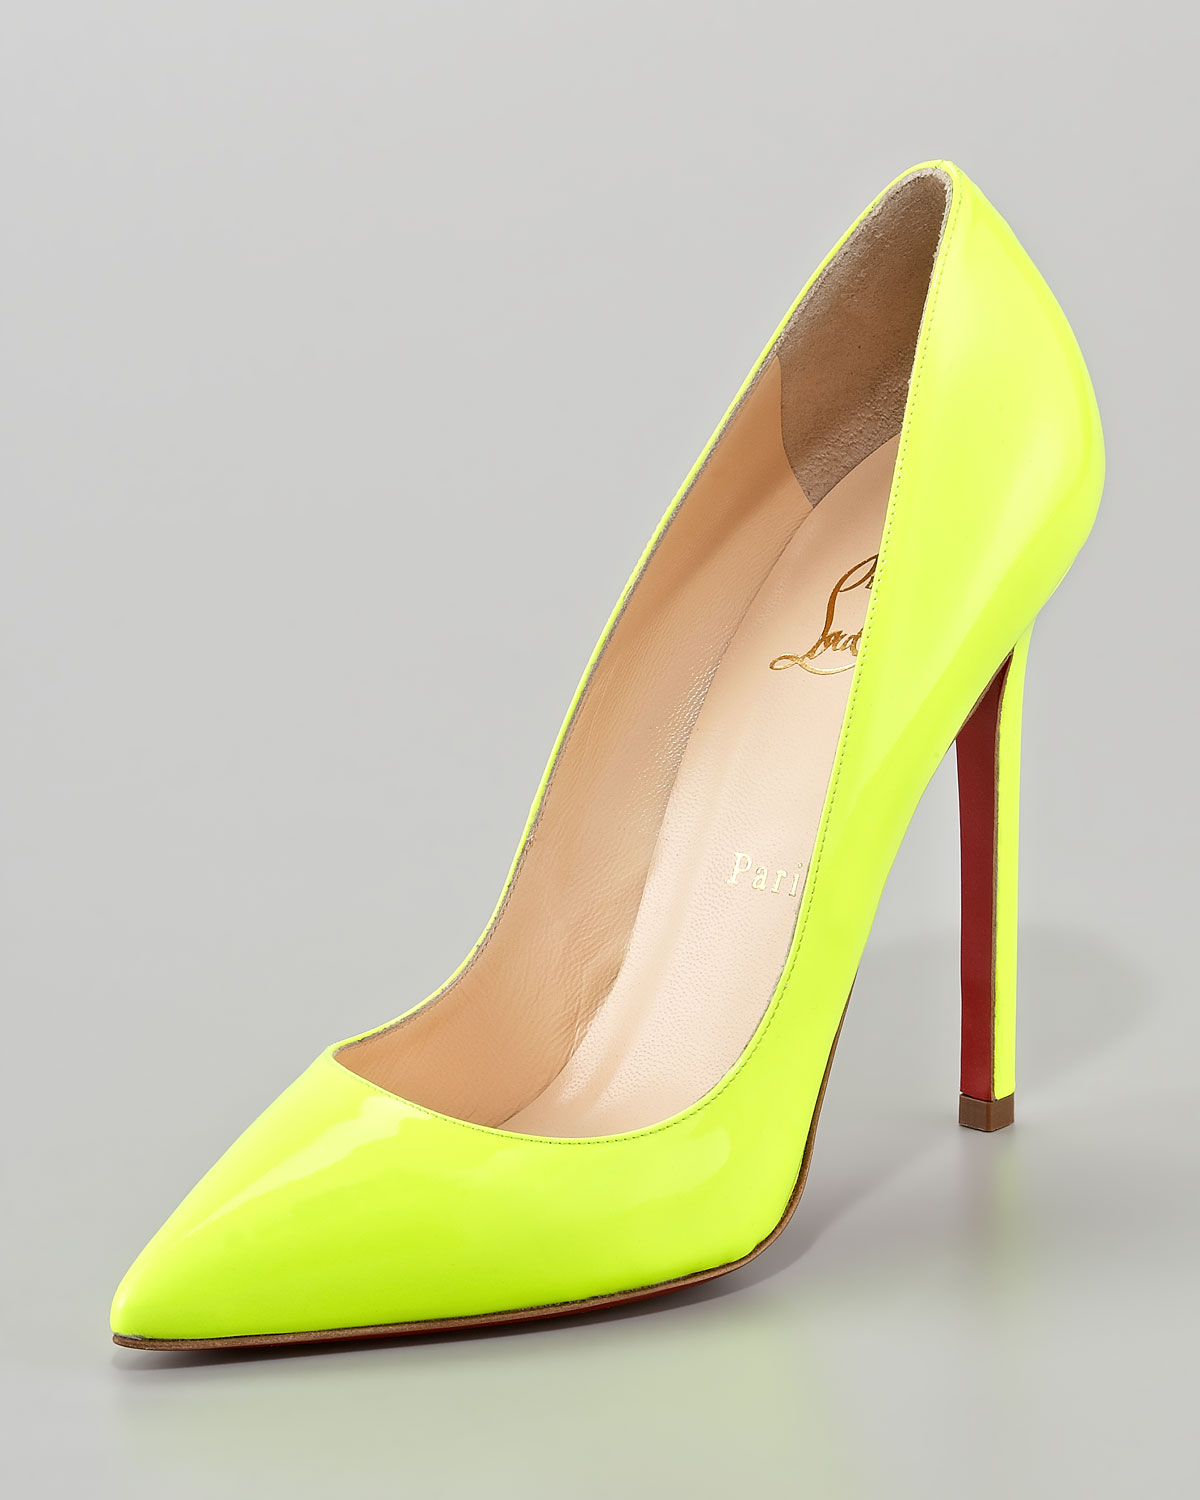 dae25ff65297 Gallery. Previously sold at  Neiman Marcus · Women s Yellow Heels Women s  Christian Louboutin Pigalle